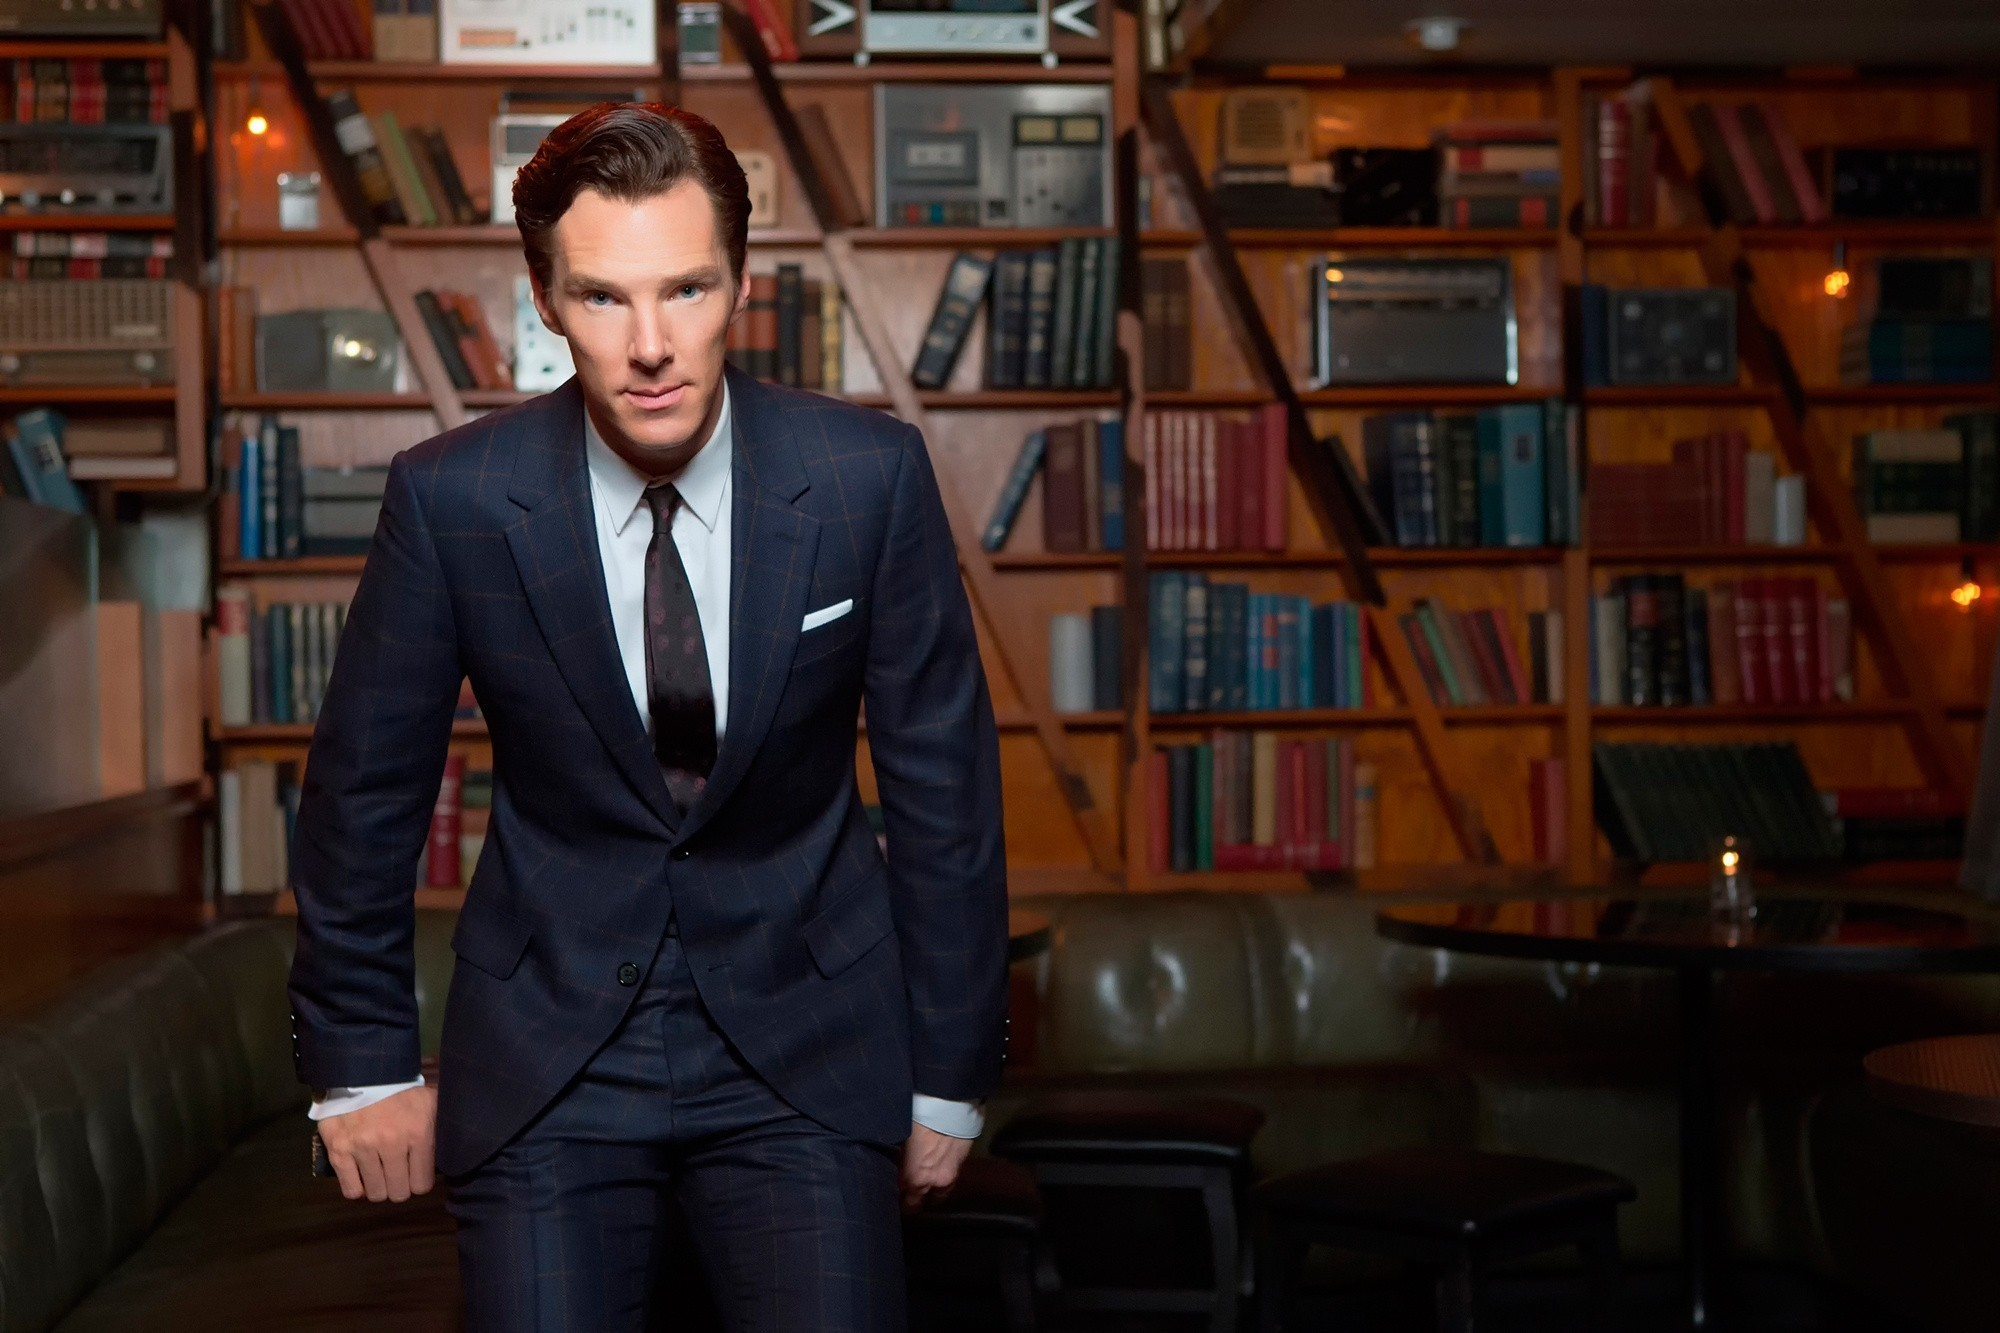 Benedict Cumberbatch Wallpaper Hd: Benedict Cumberbatch Sherlock Wallpaper (82+ Images